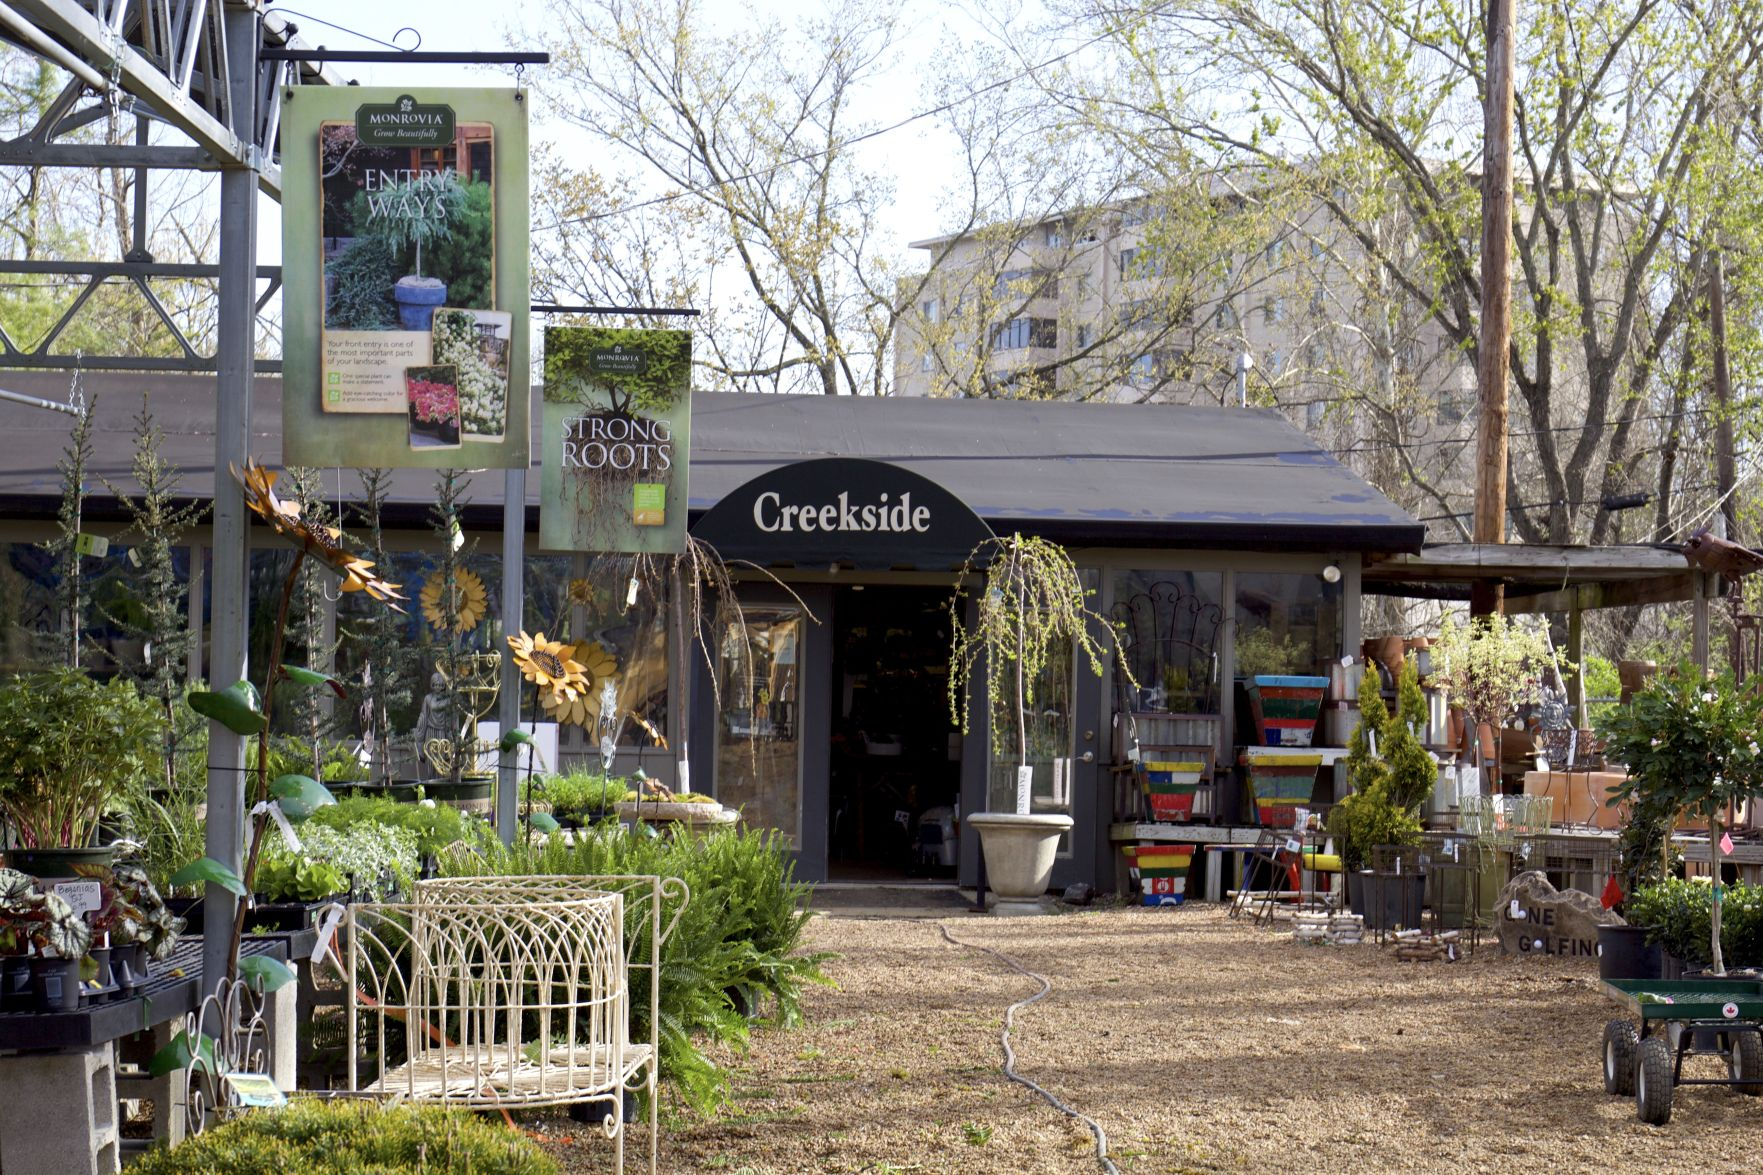 Flowers, plants and garden decorations lead to Creekside's storefront